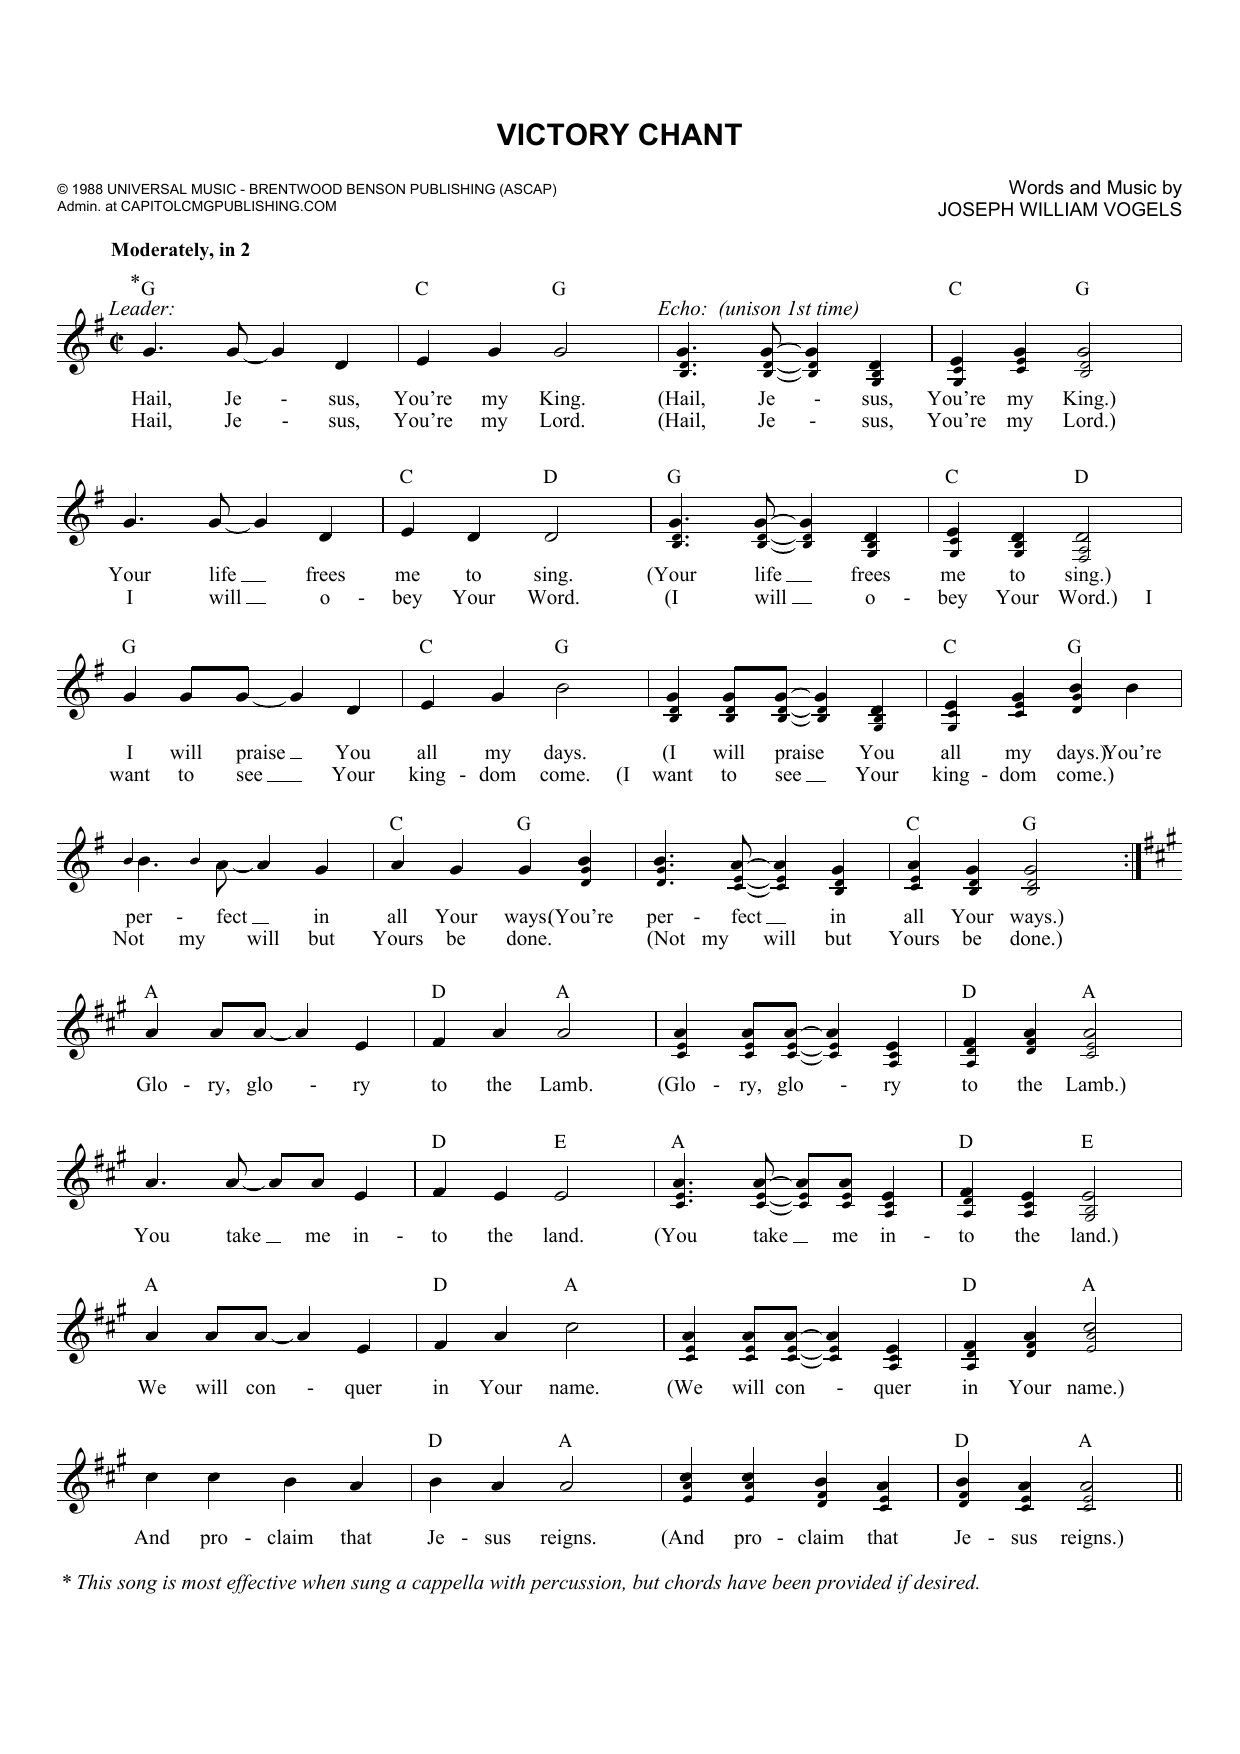 Joseph Williams Vogels Victory Chant sheet music notes and chords. Download Printable PDF.